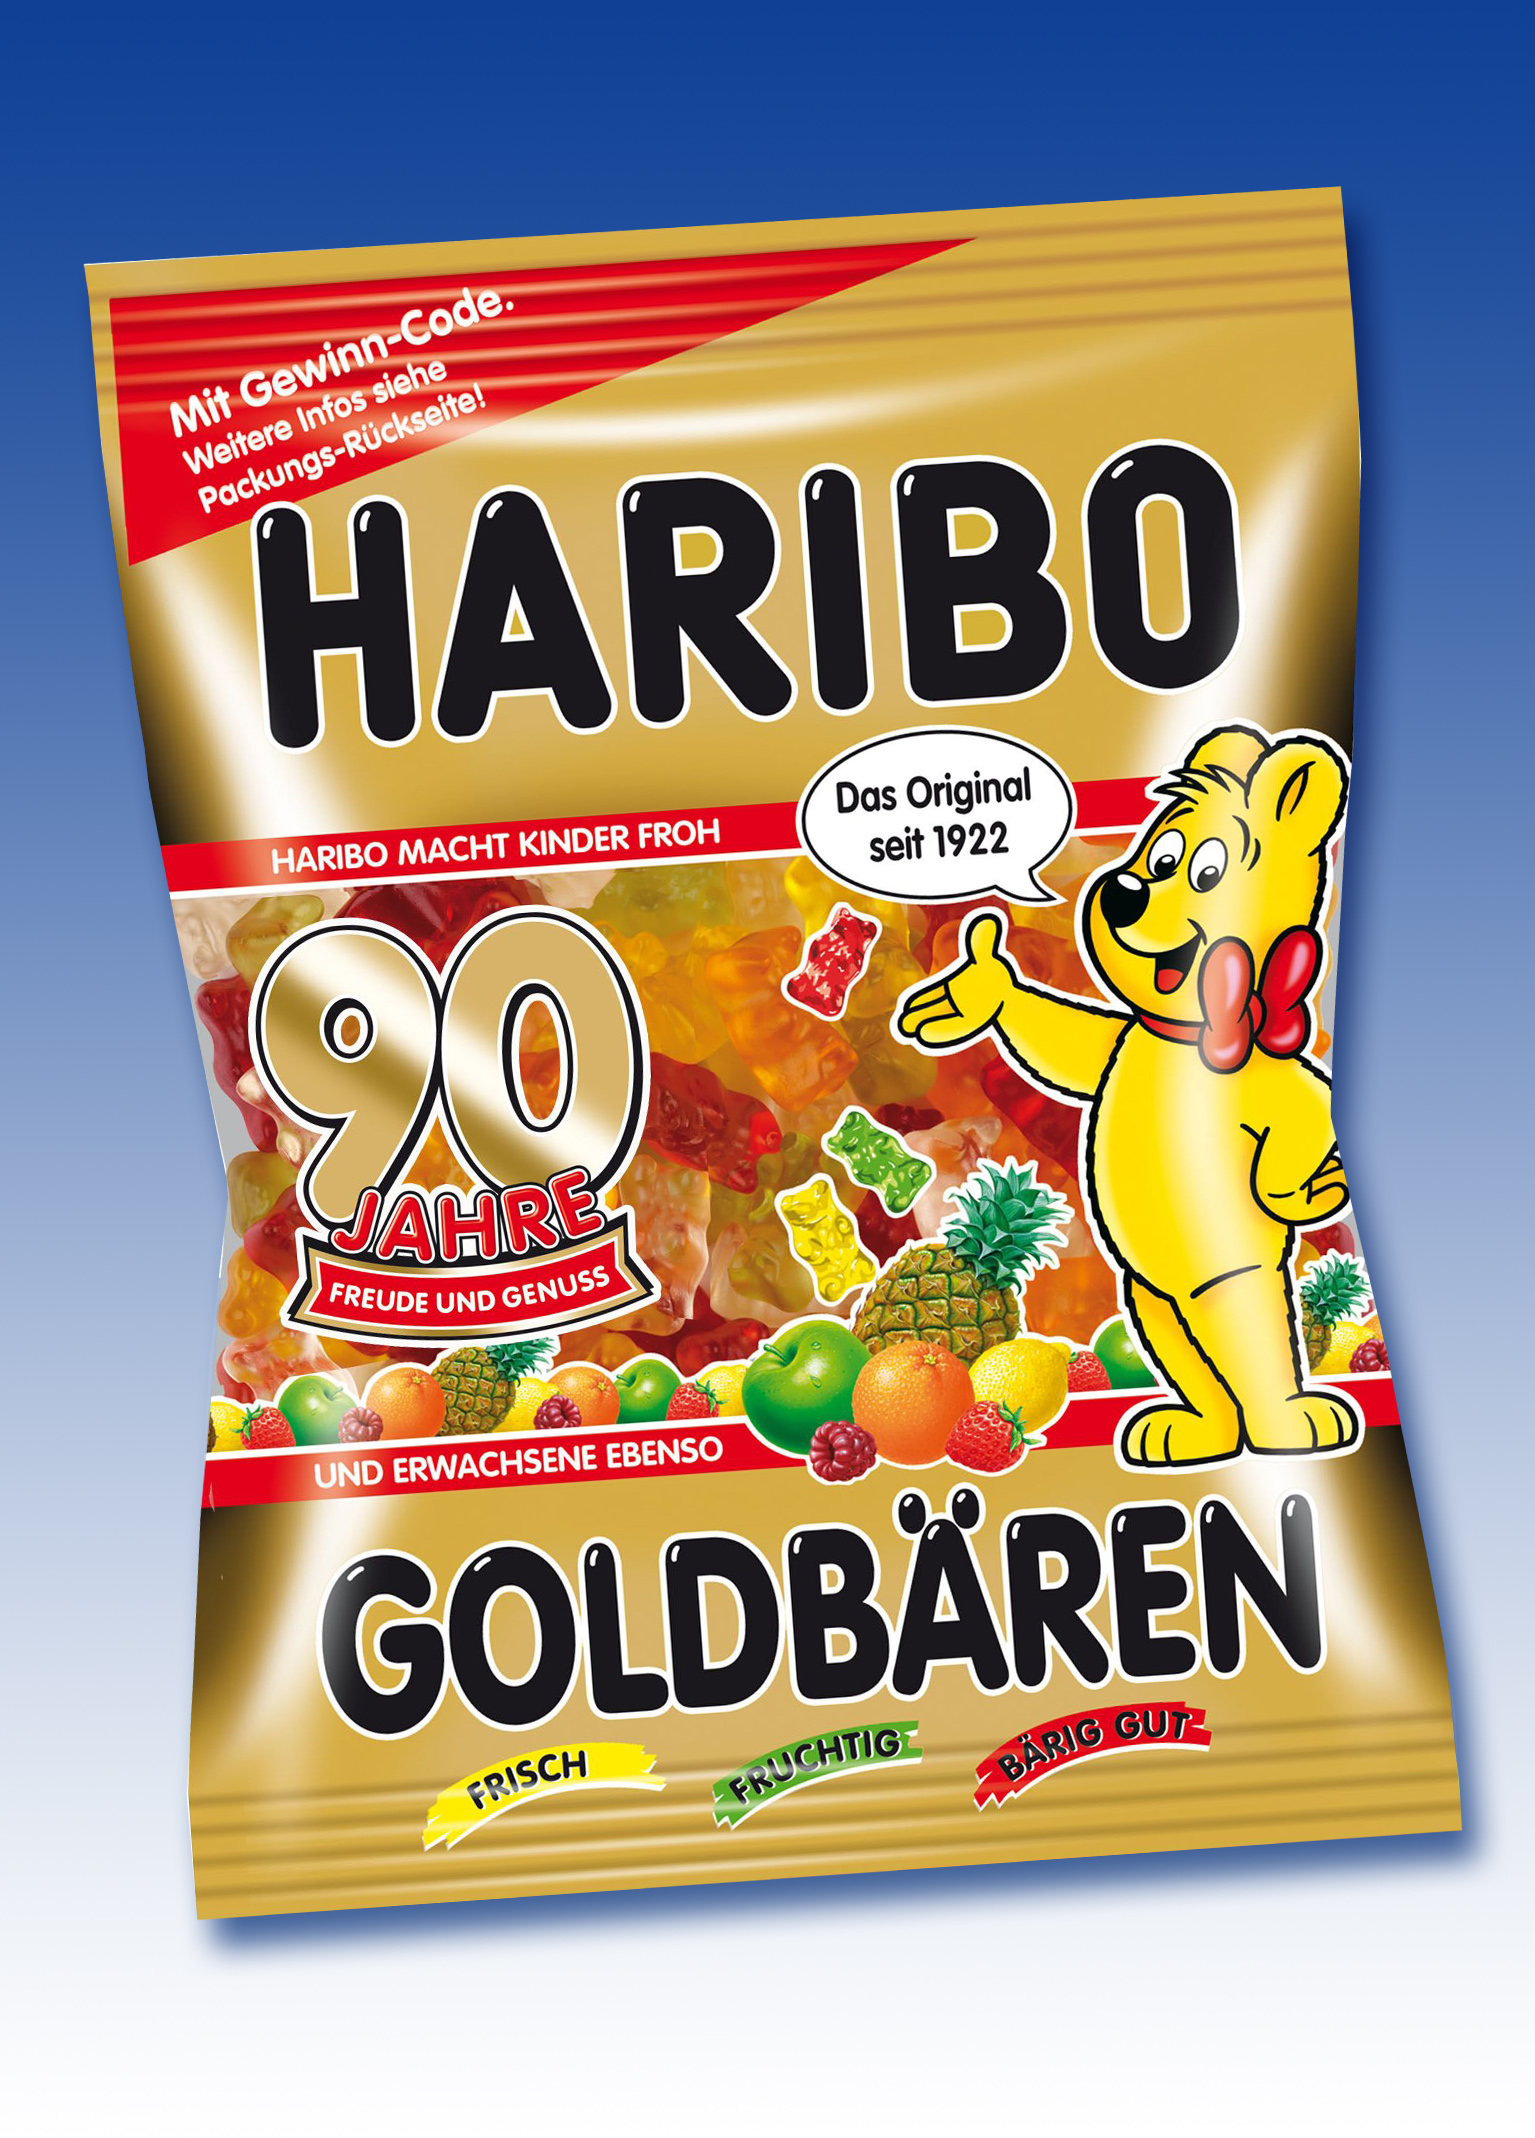 Bettwäsche Kinder Riegel GoldbÄren Jubiläumsbeutel 2012 Haribo Gmbh And Co Kg